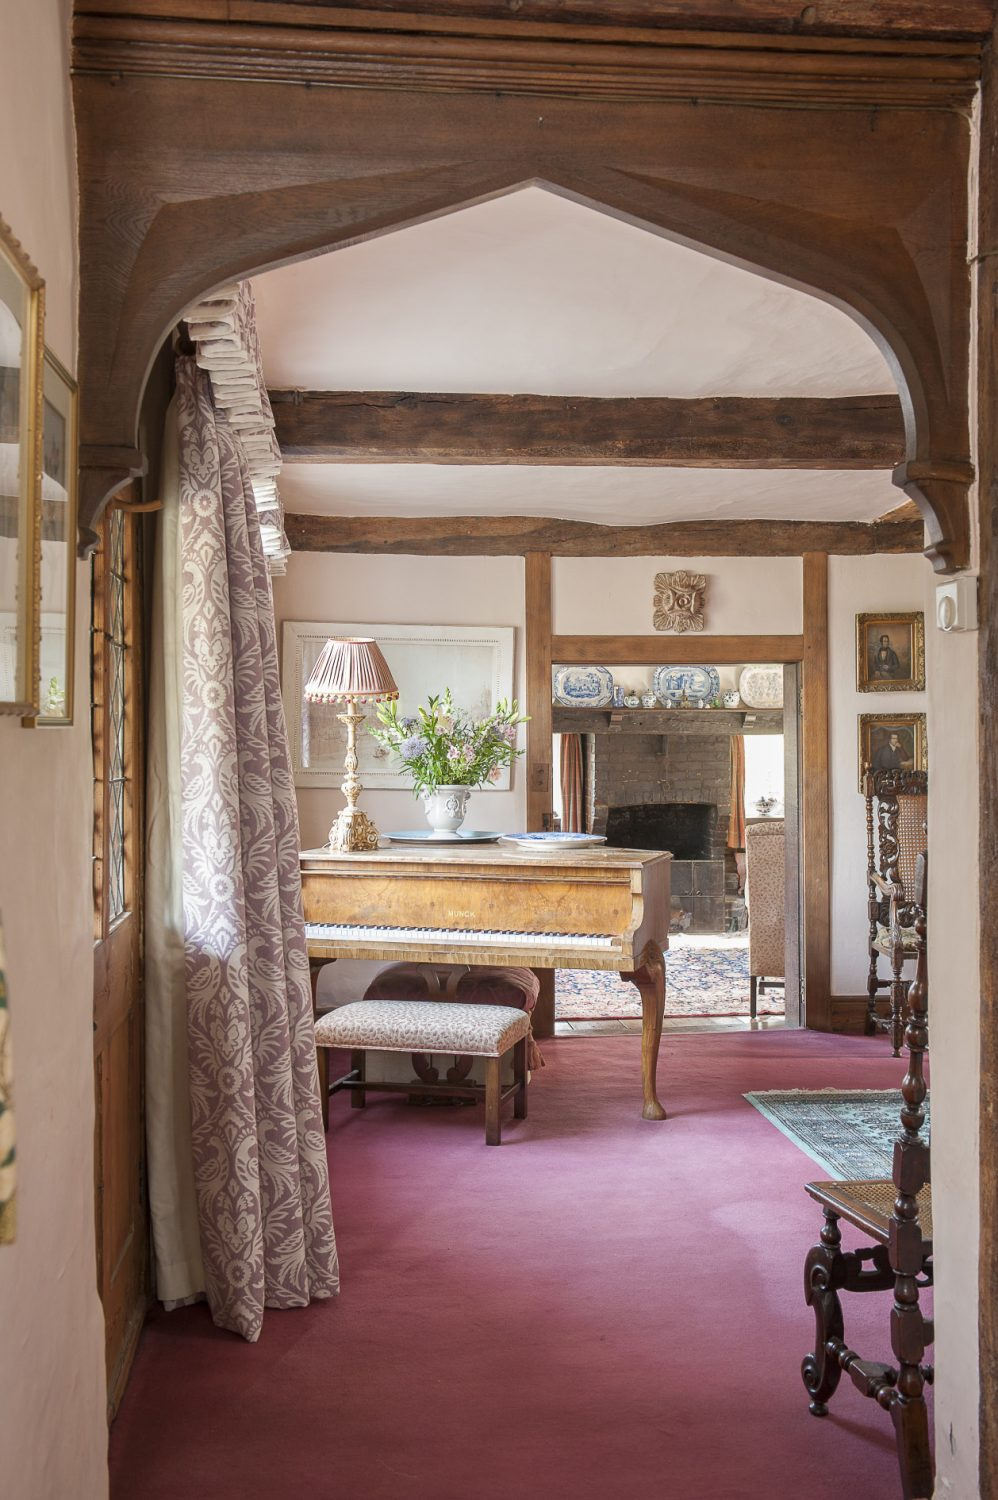 "Despite being such an old house, and in some ways a typical Wealden timber-framed building, it is surprisingly light inside with large rooms and relatively high ceilings. ""It's quite surprising, isn't it?"" says Jane. ""Friends say it has a slightly Tuscan feel about it."""